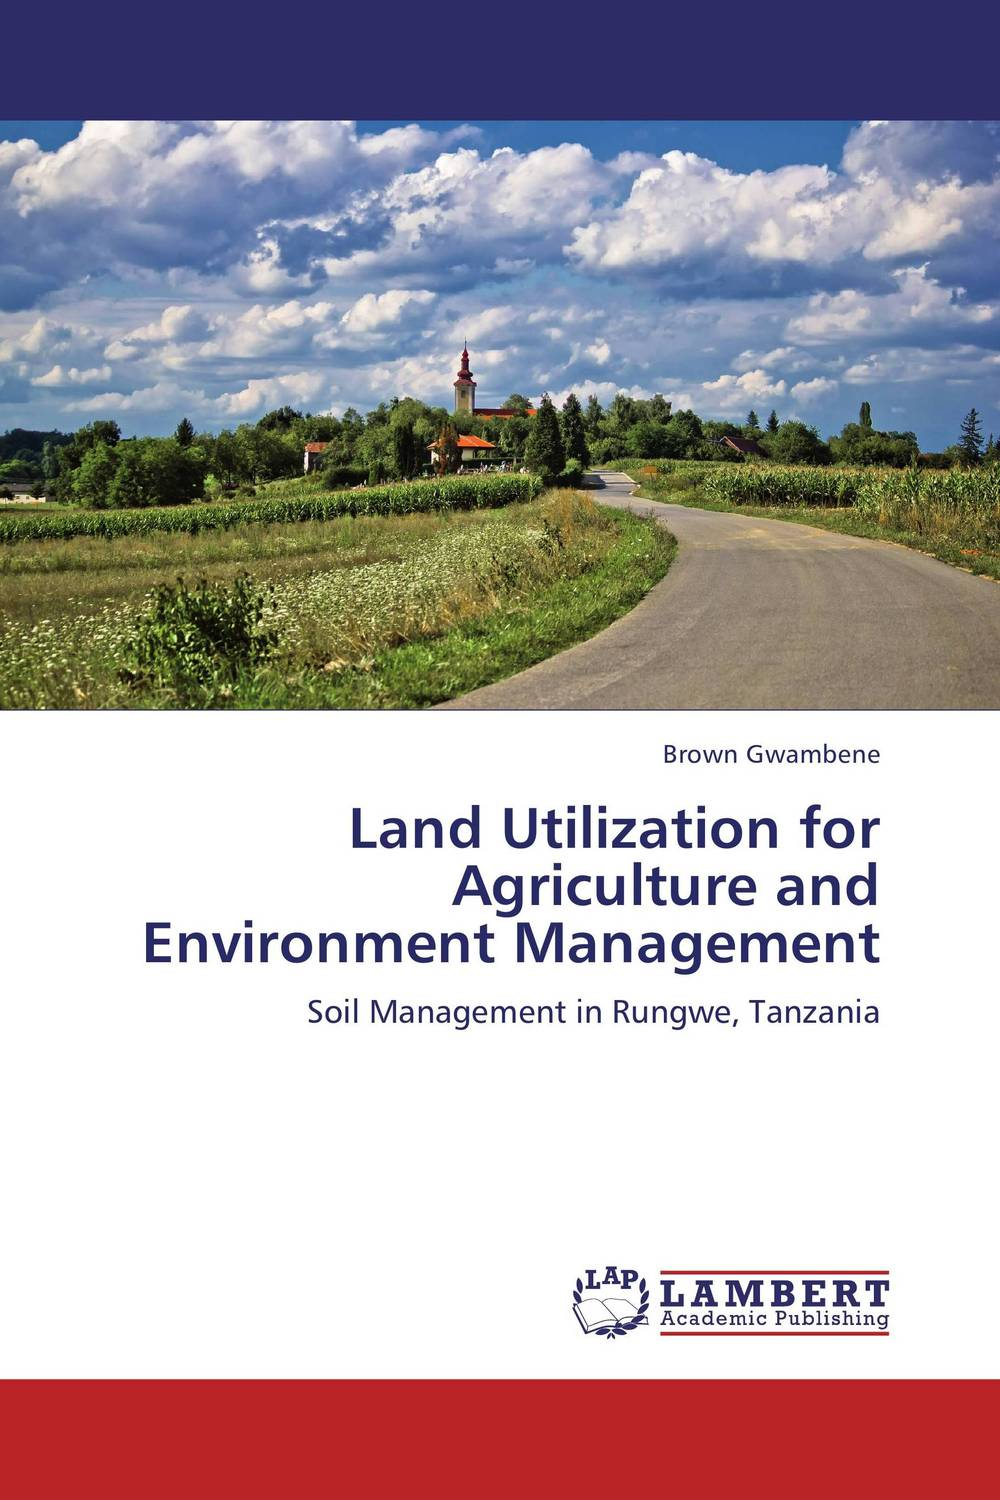 Land Utilization for Agriculture and Environment Management land use information system